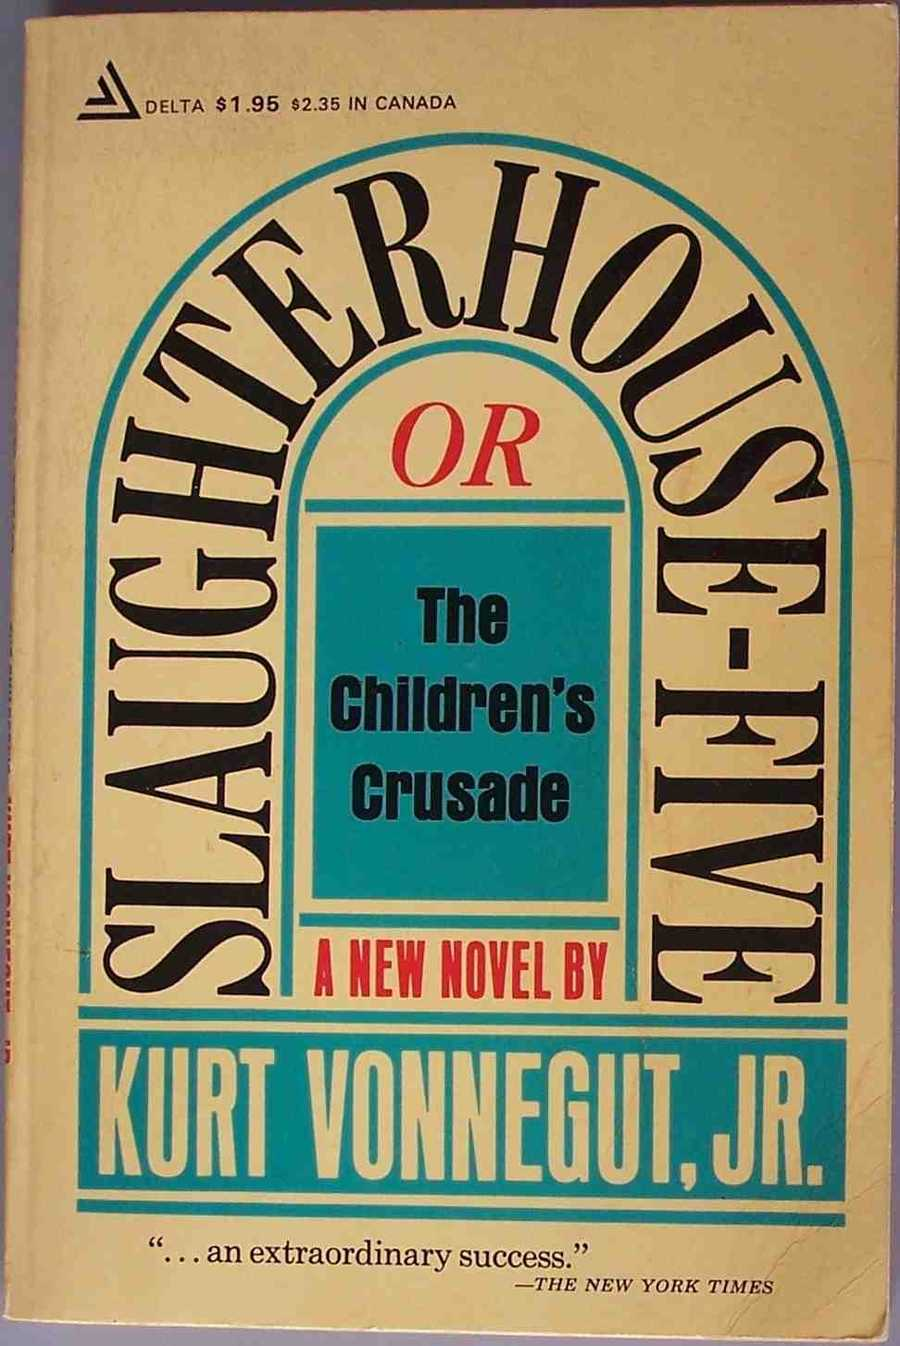 Slaughterhouse-Five, Kurt Vonnegut, 1969Slaughterhouse-Five is the sixty-seventh entry to the American Library Association's list of the 100 Most Frequently Challenged Books of 1990–1999. The subject of many attempts at censorship, due to its irreverent tone and purportedly obscene content, a circuit judge banned it in 1972.  The ban has since been reversed.